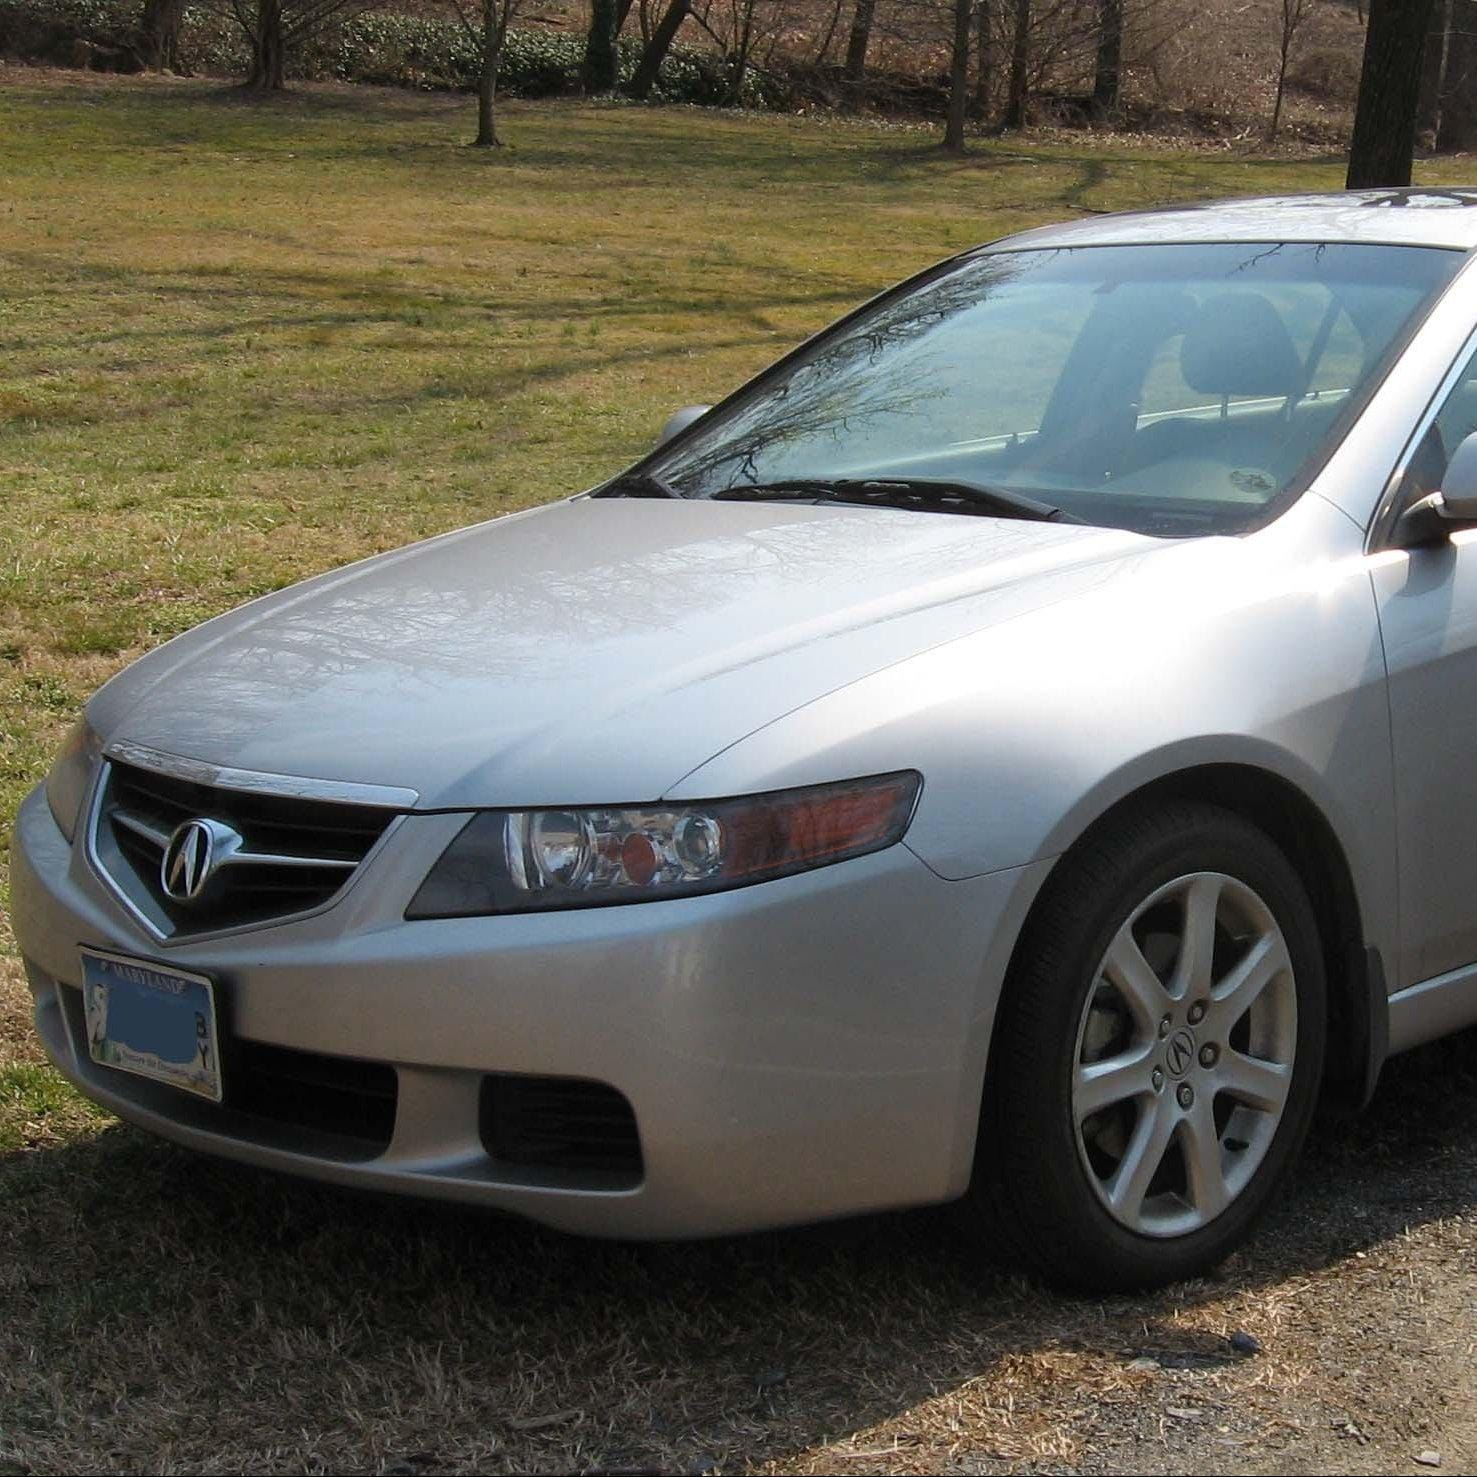 2005 Acura TSX Rankings & Opinions